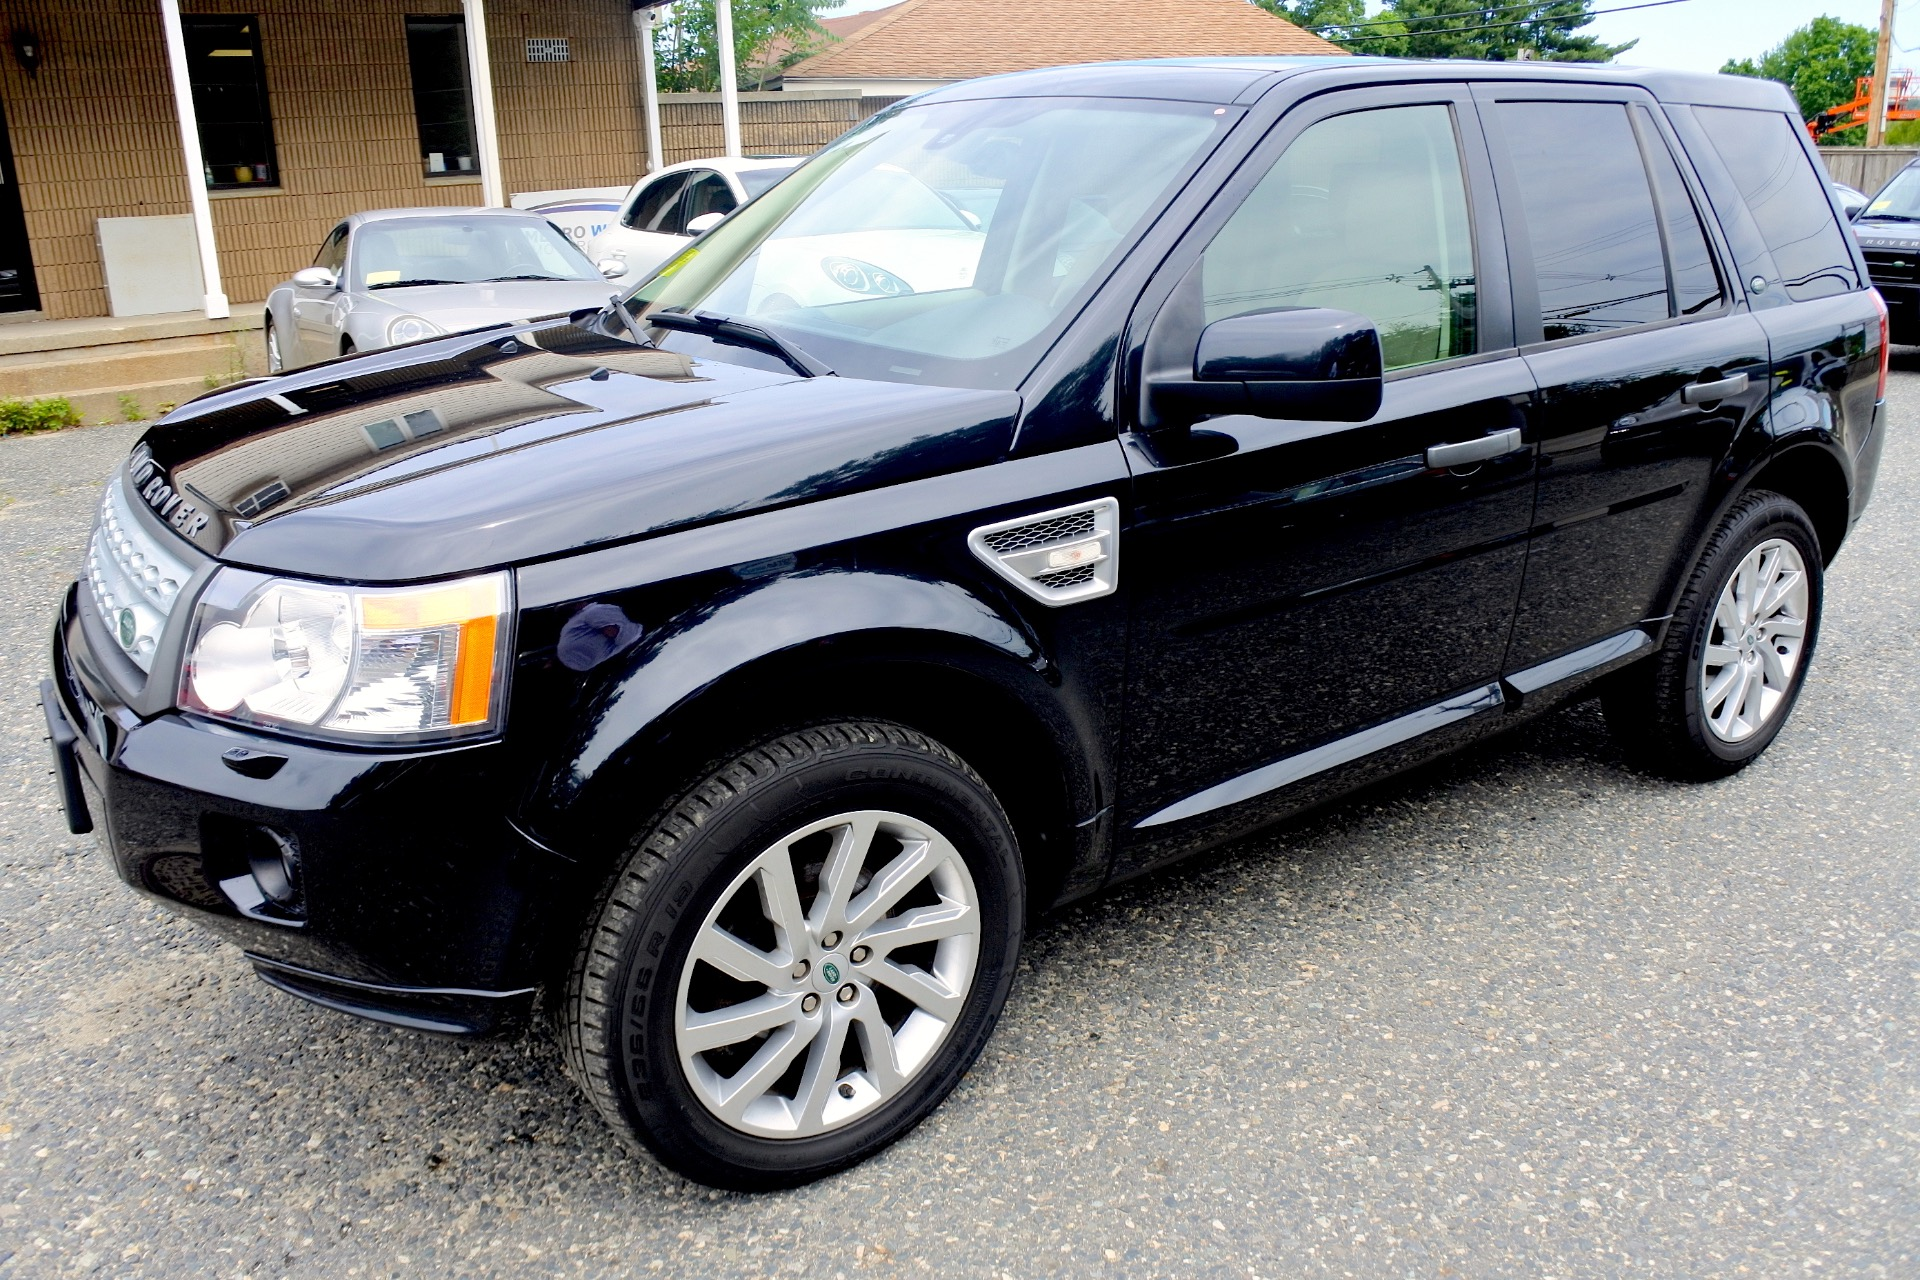 Used 2012 Land Rover Lr2 HSE AWD Used 2012 Land Rover Lr2 HSE AWD for sale  at Metro West Motorcars LLC in Shrewsbury MA 1